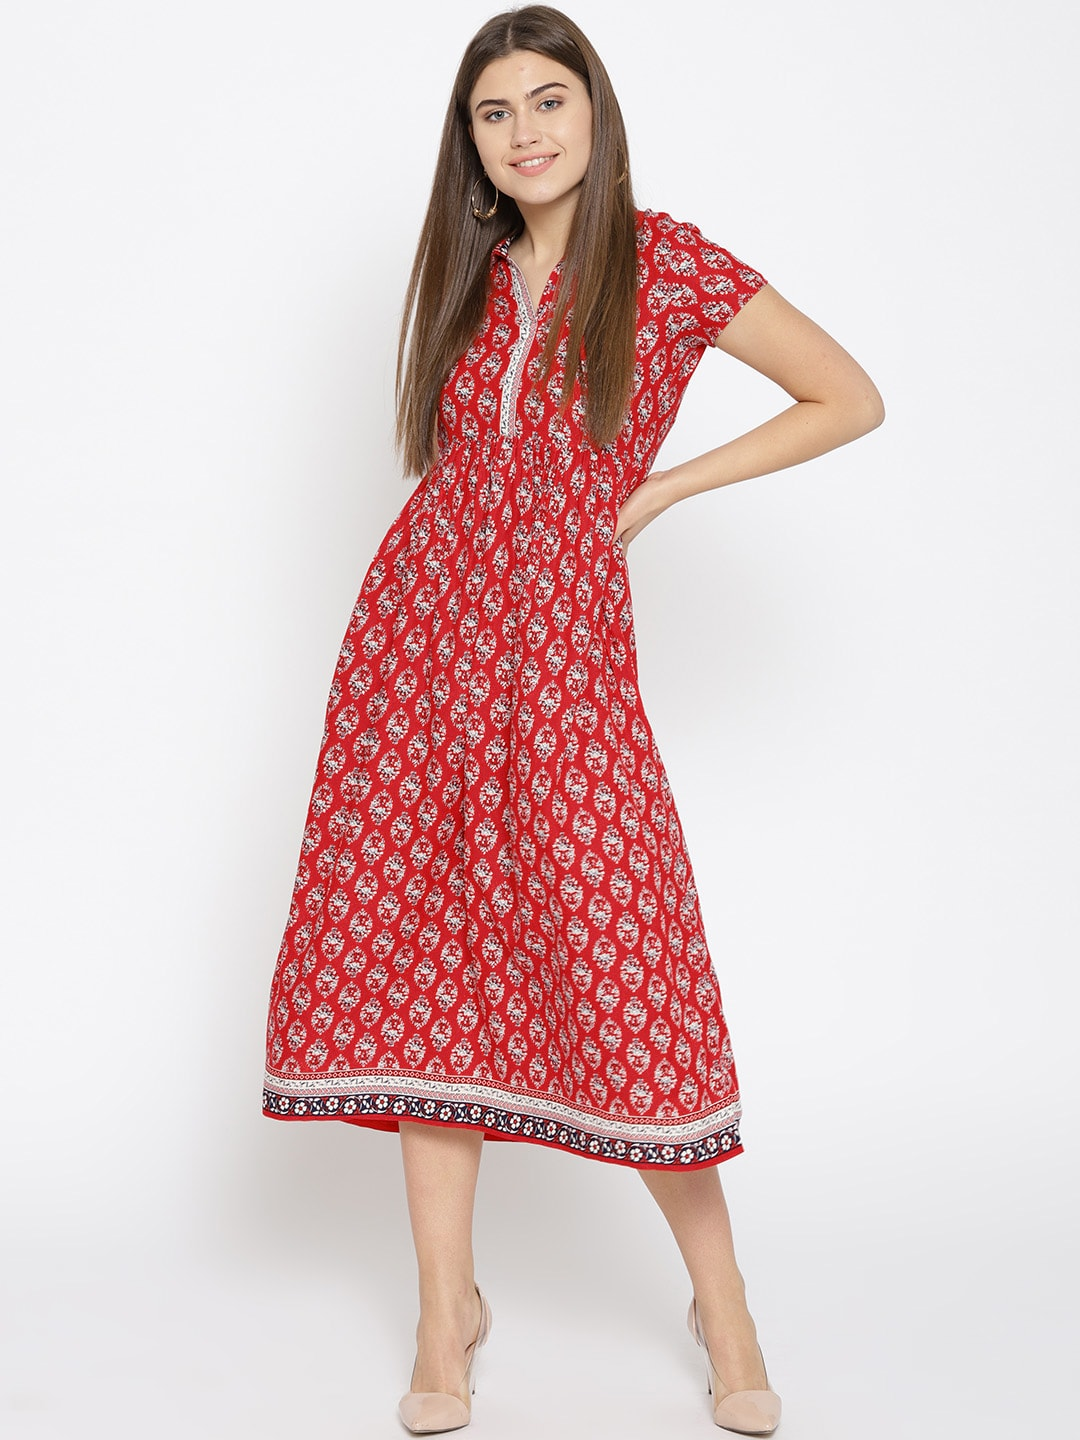 Red Dress - Buy Trendy Red Colour Dresses Online in India  96107b87a